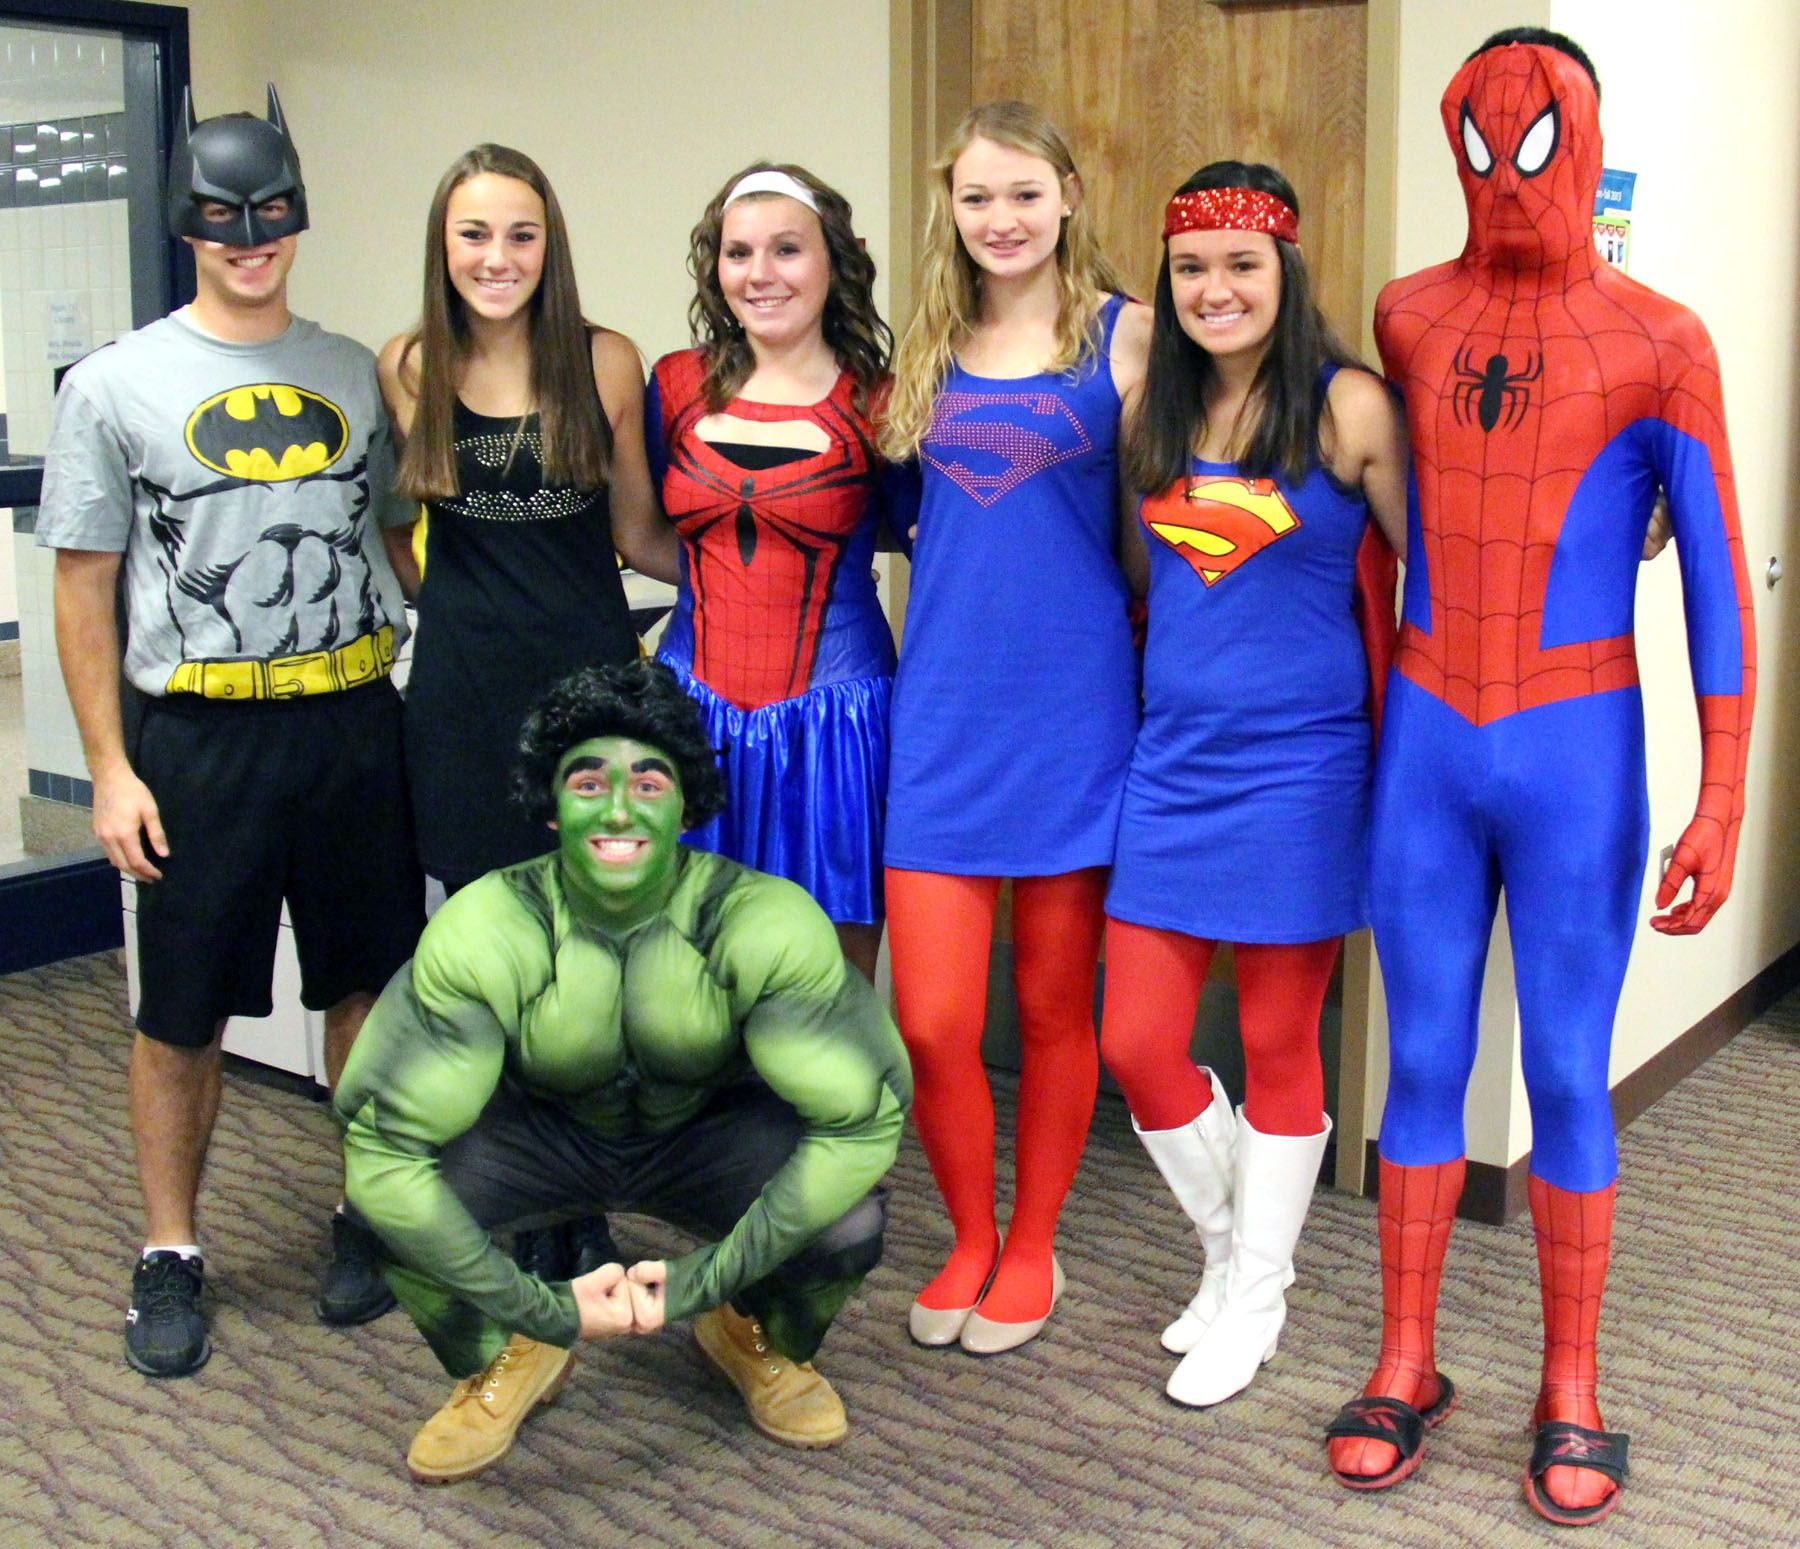 Superhero day at Pulaski High School reaches impressive